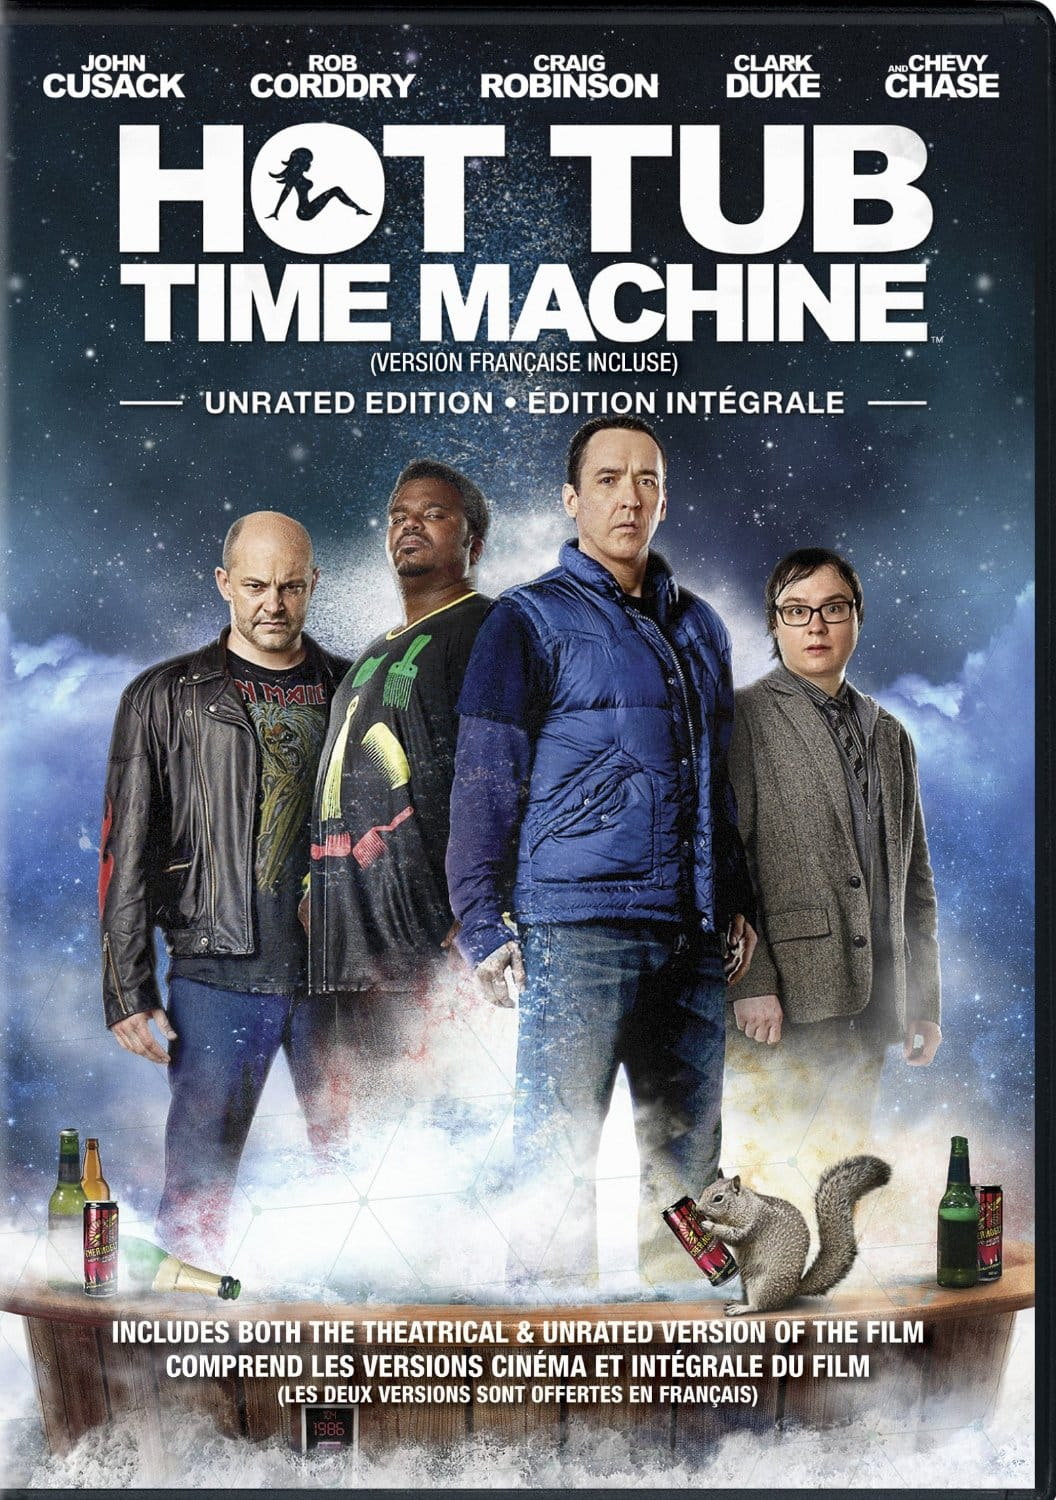 Hot Tub Time Machine (Unrated) - FREE Rental on Xbox Video (2/20-2/22)